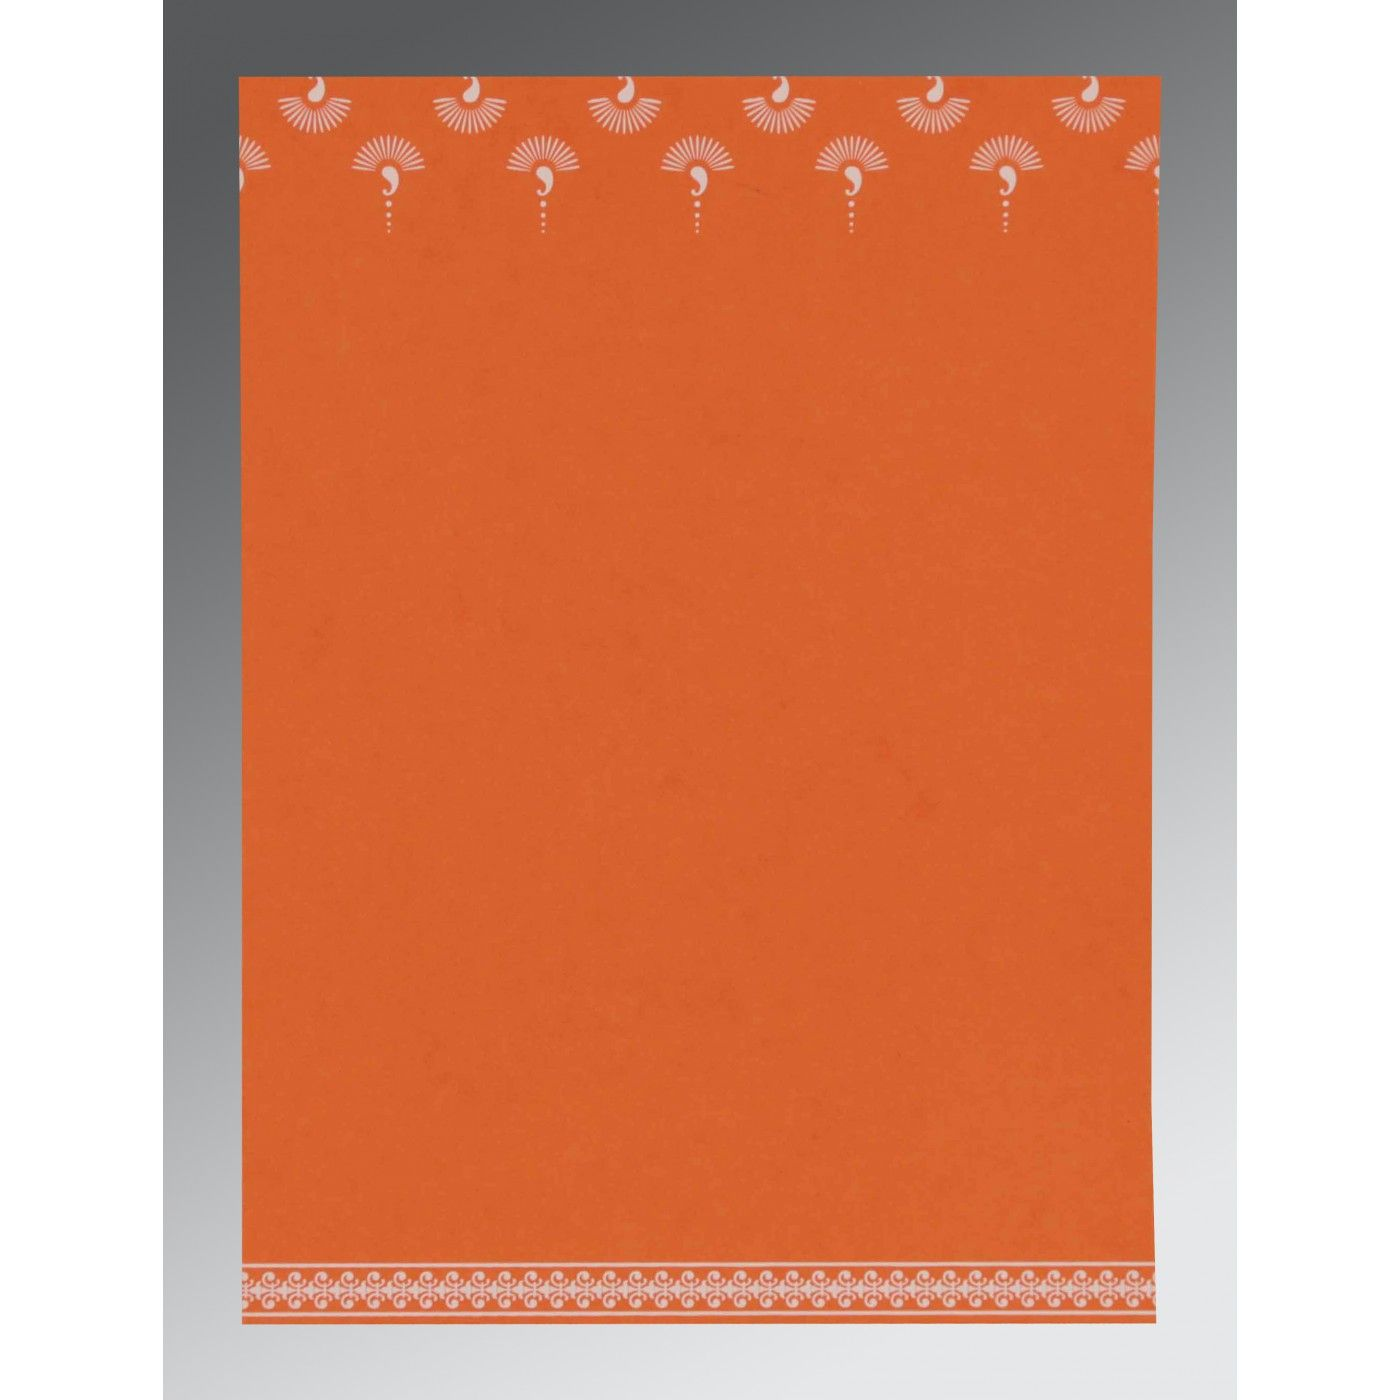 ORANGE MATTE SCREEN PRINTED WEDDING INVITATION : CD-8247I - IndianWeddingCards